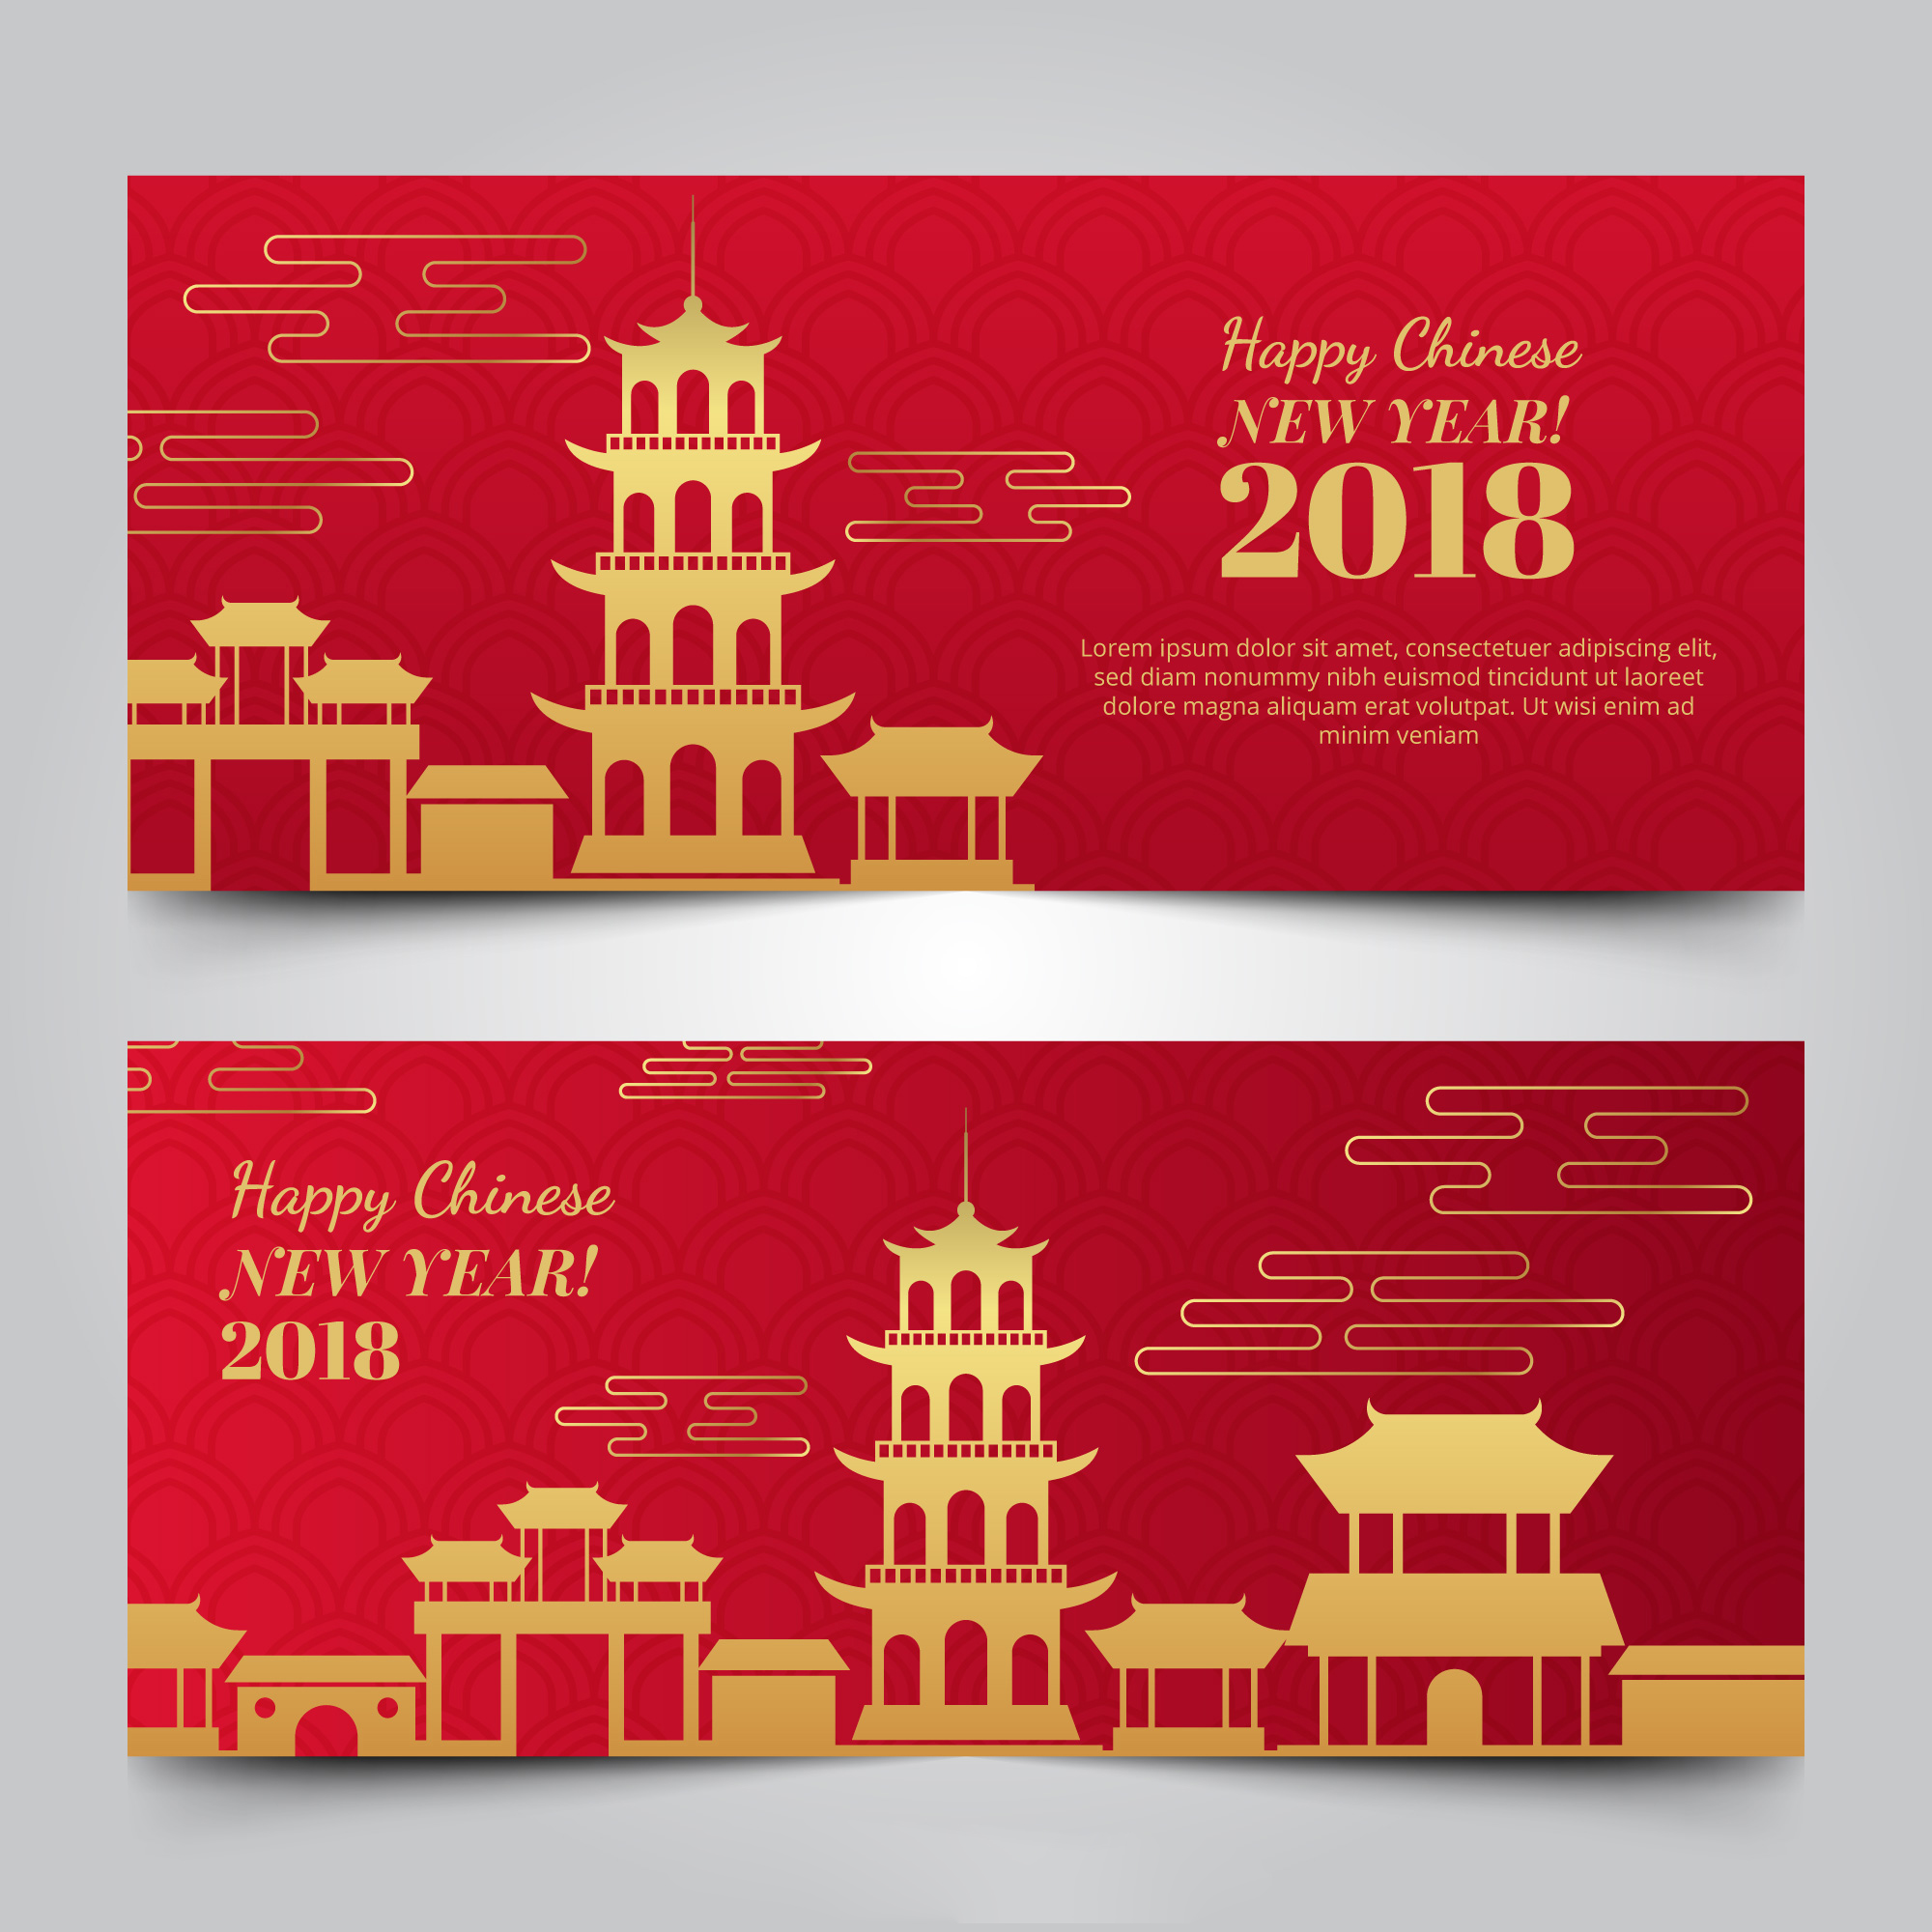 2019新年农历猪年贺卡矢量素材模板 2019 New Year Lunar Year Of The Pig Greeting Card Vector Material Template插图(7)